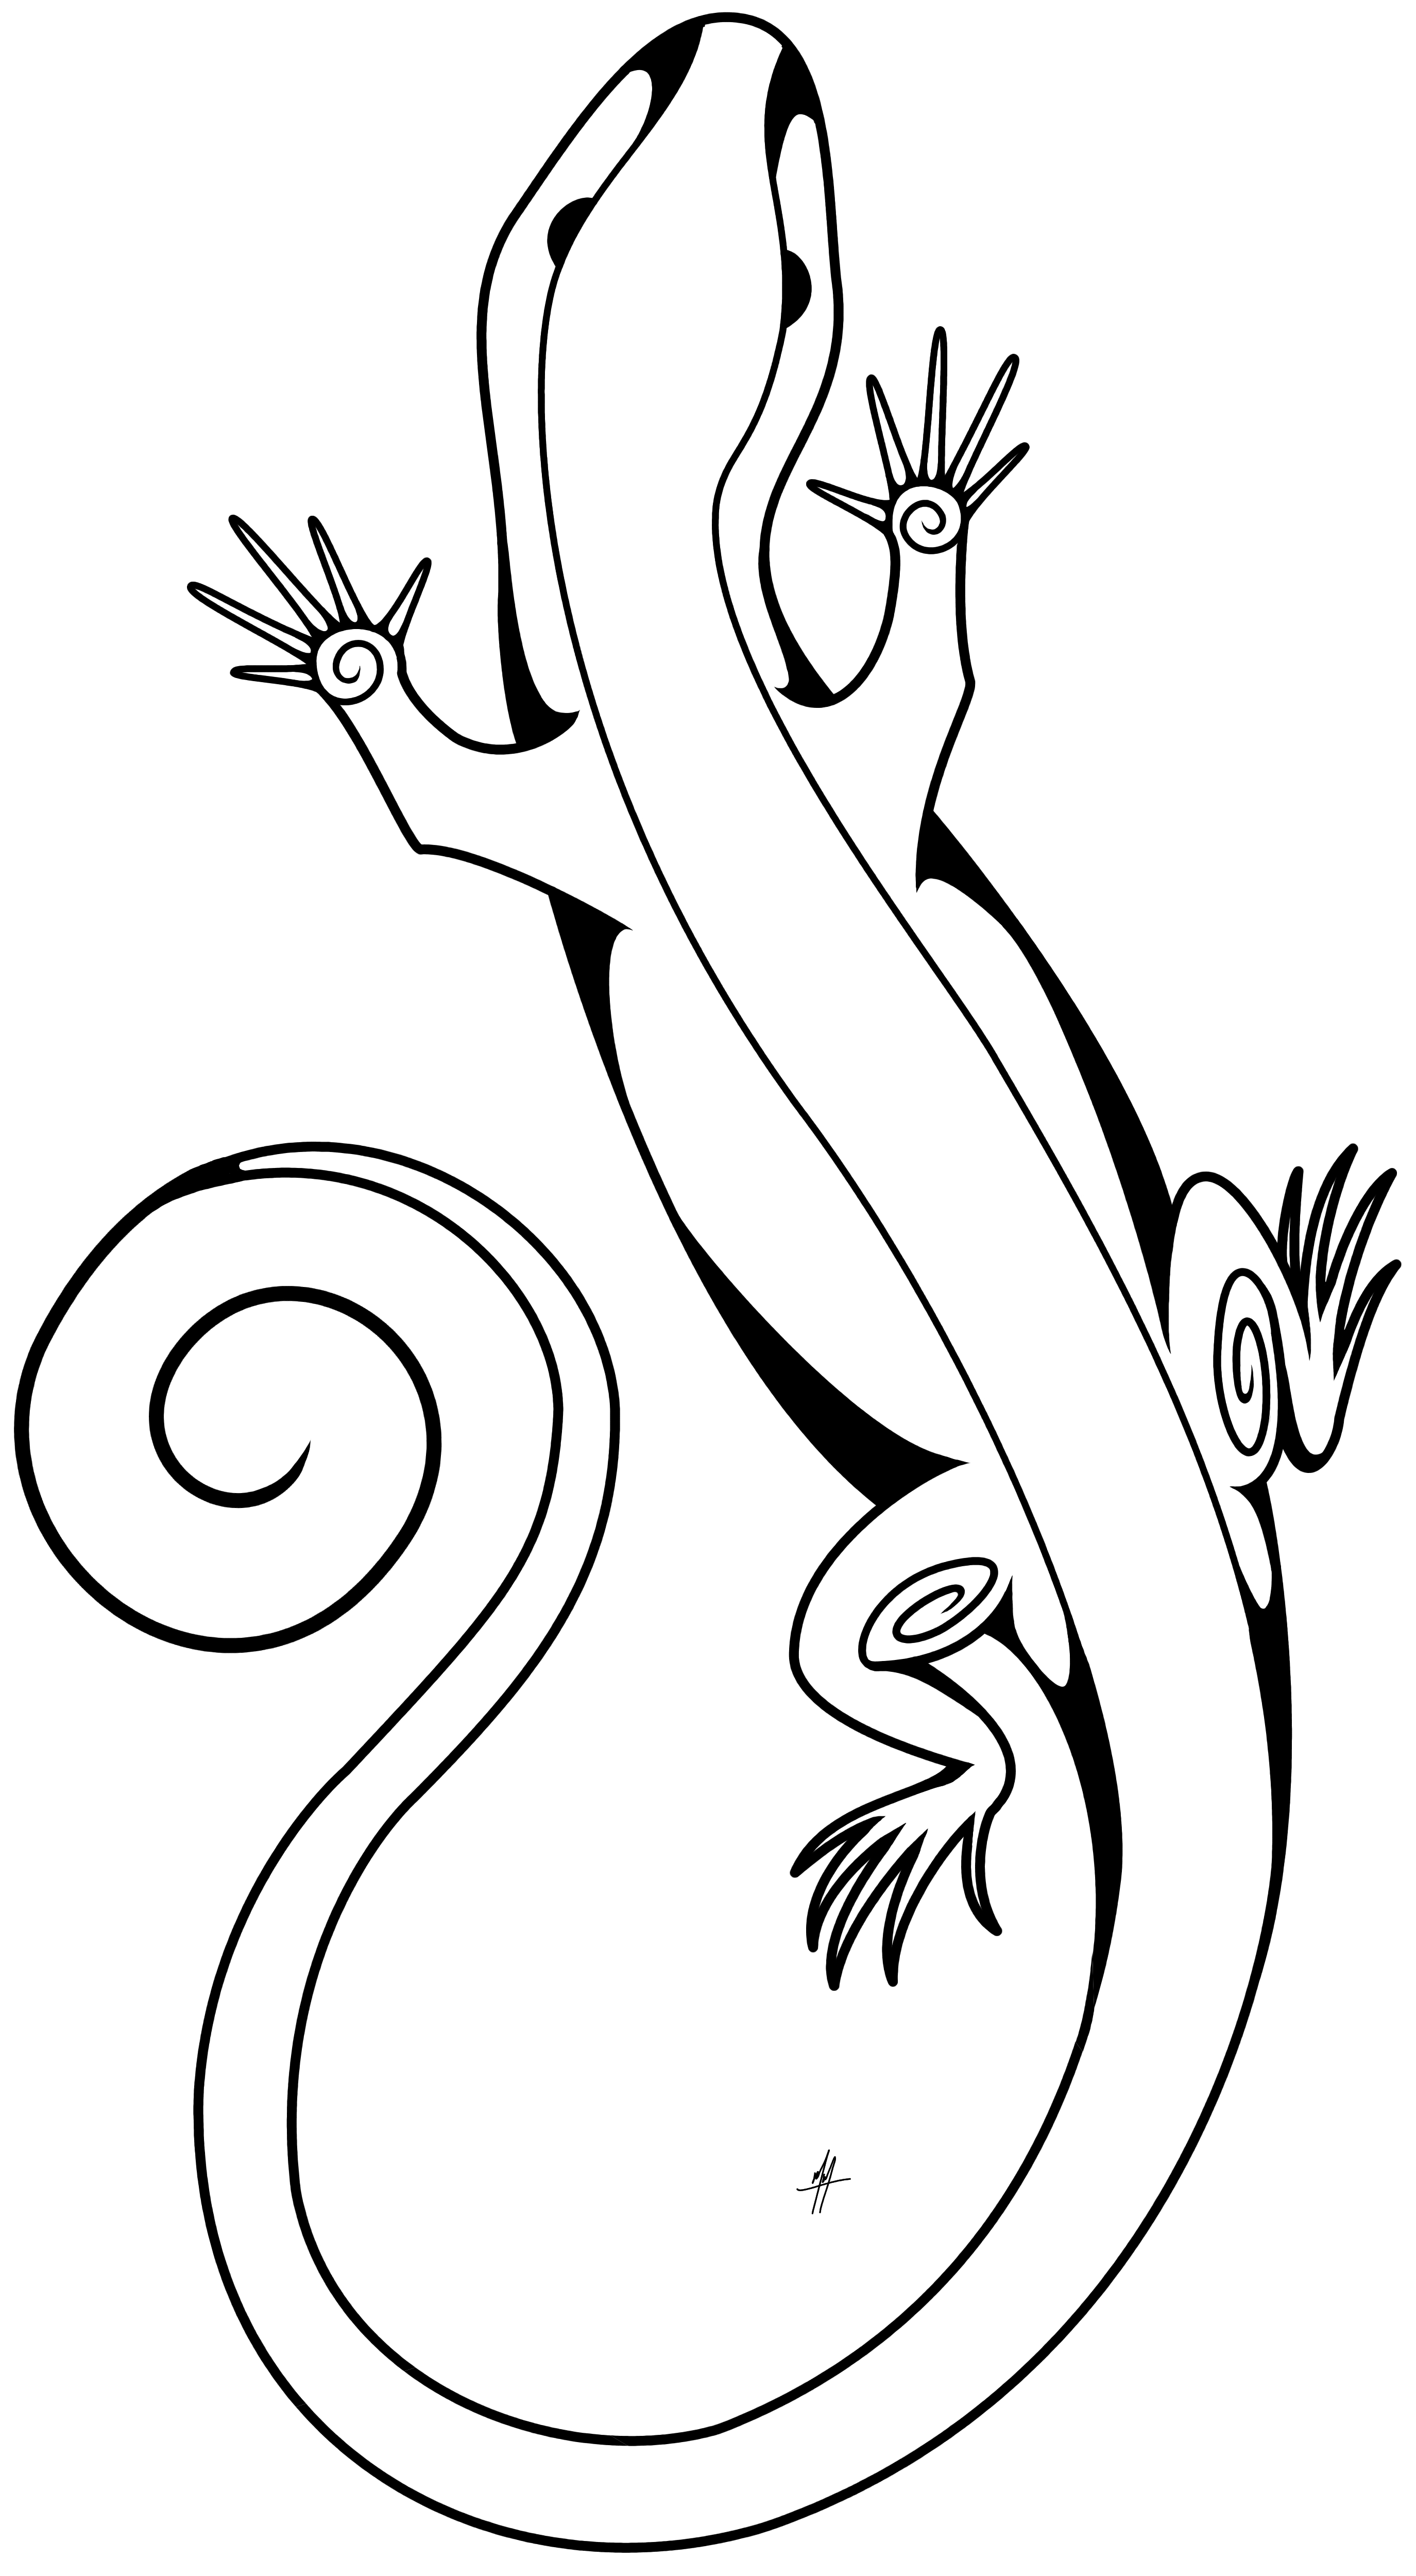 lizard to draw kids playing volleyball coloring page download print draw to lizard